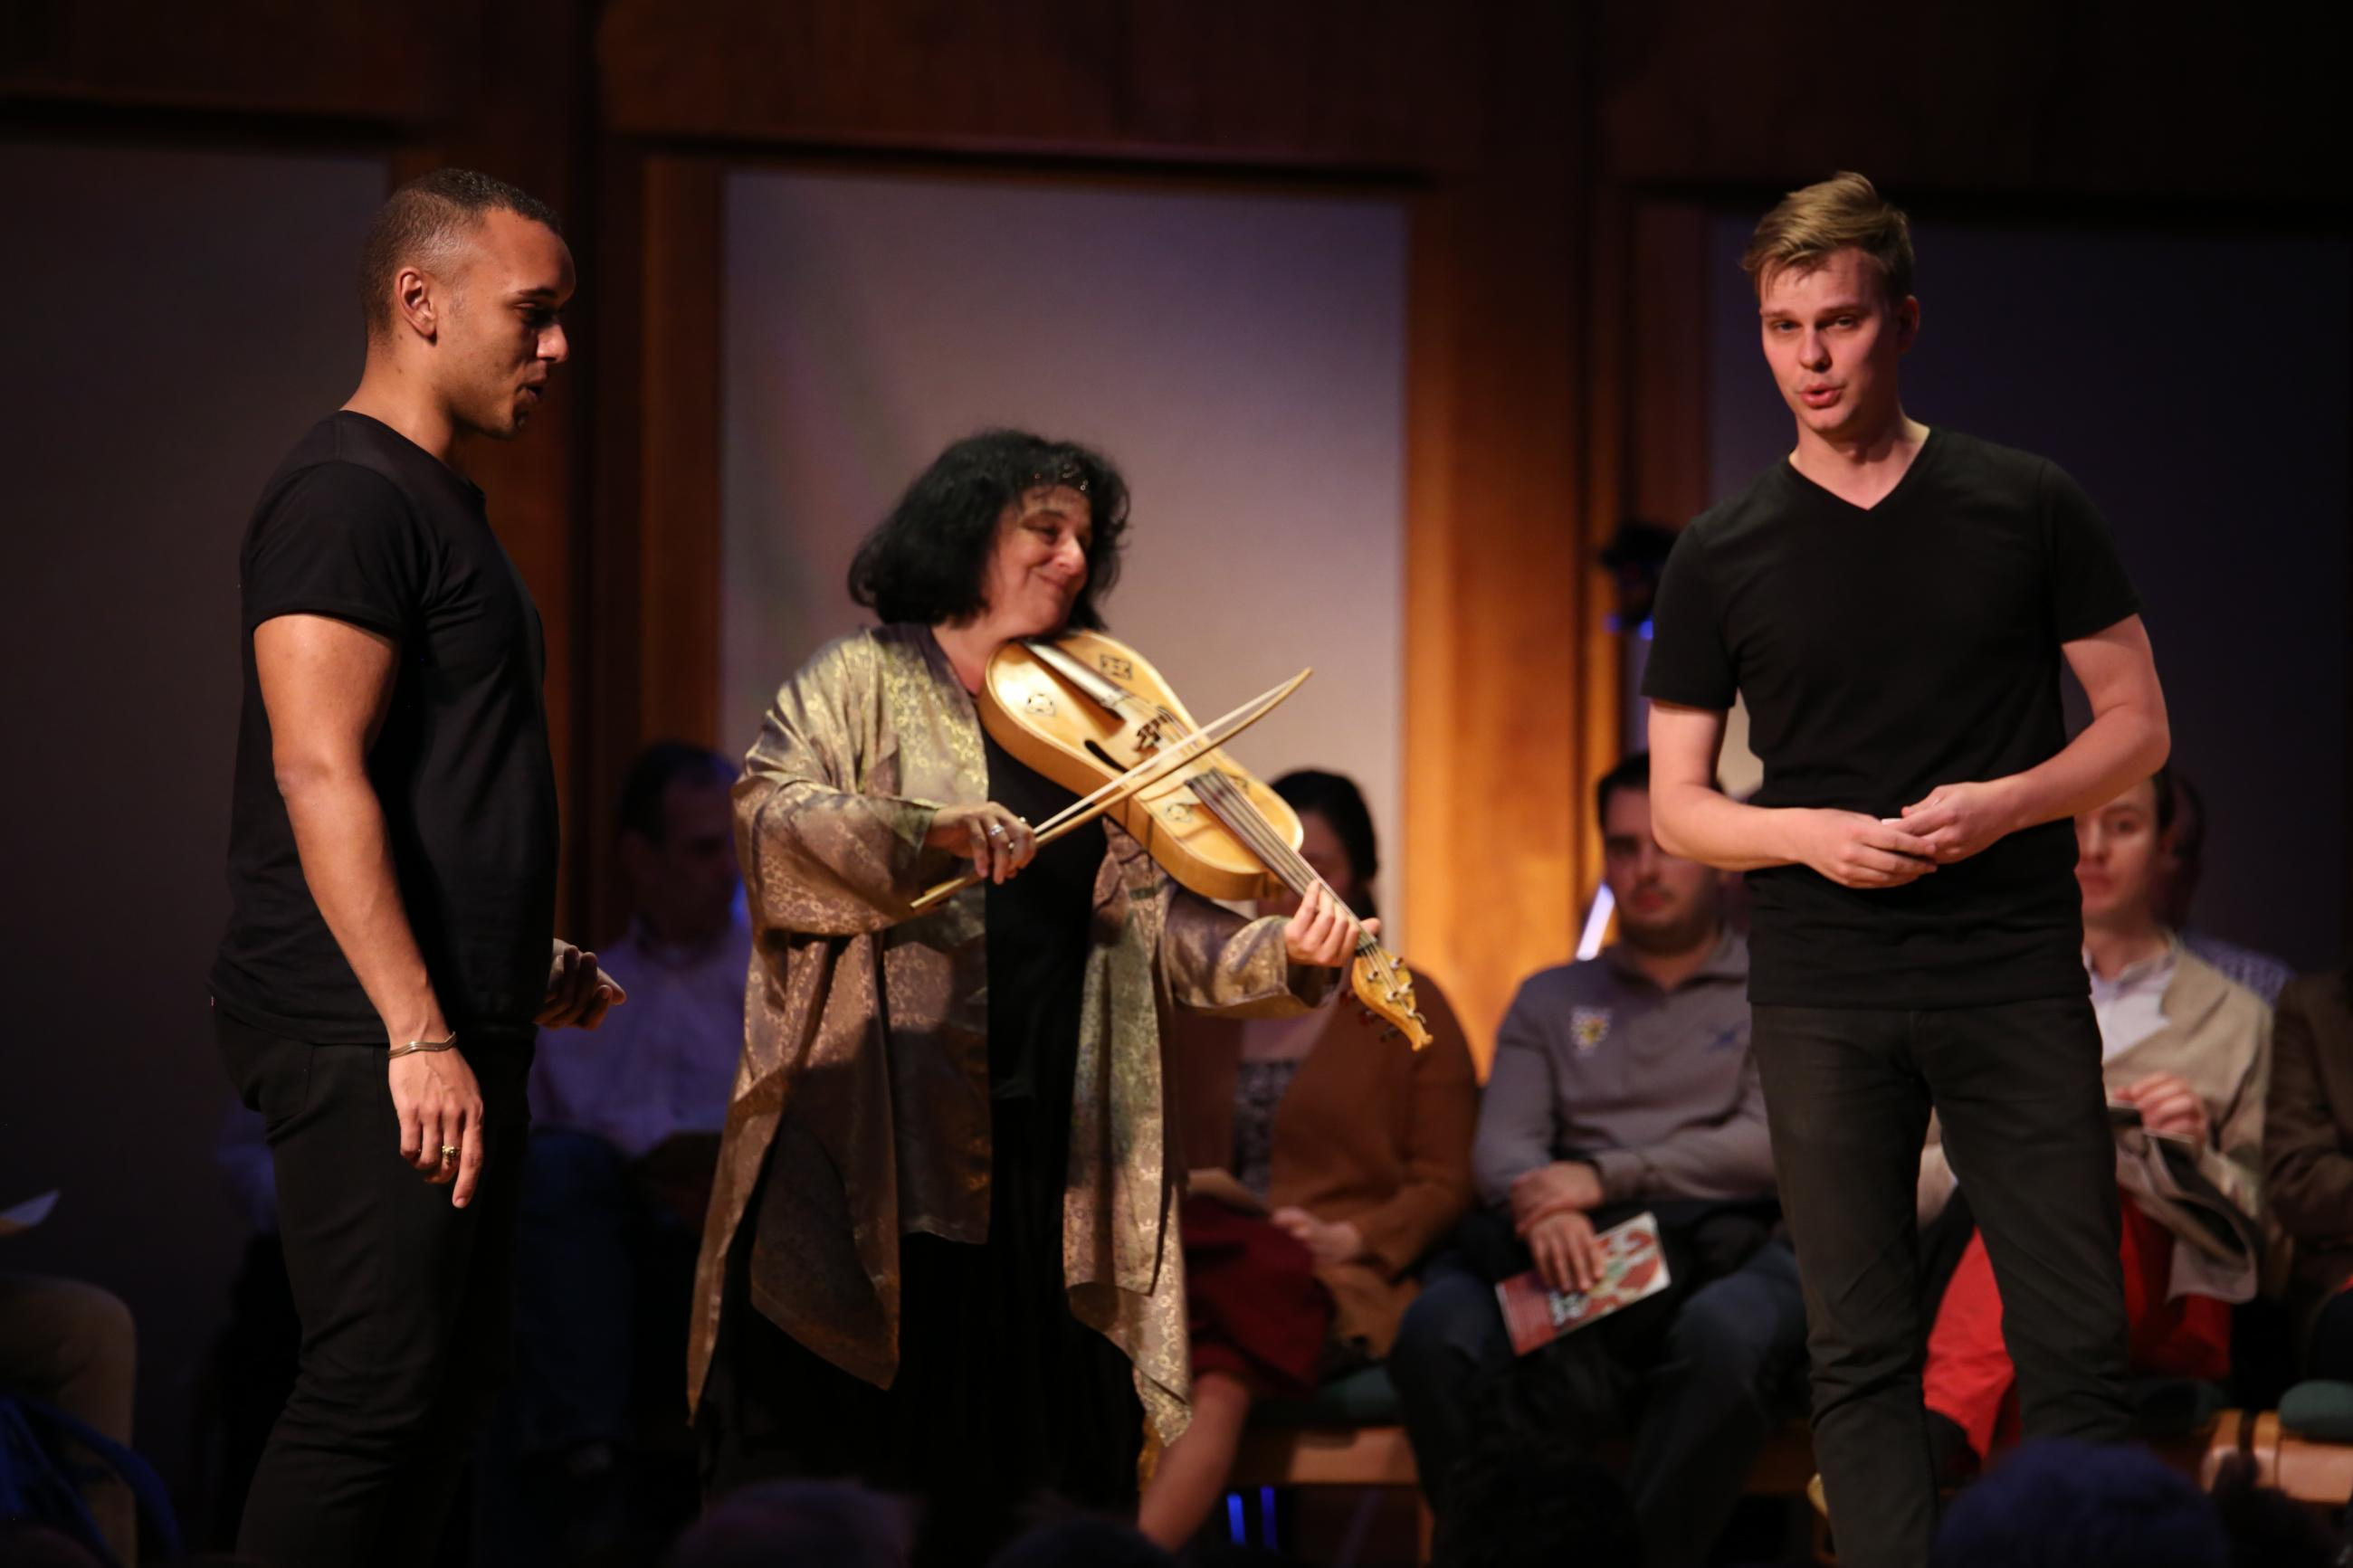 Photo from a performance of The Night's Tale by the Boston Camerata